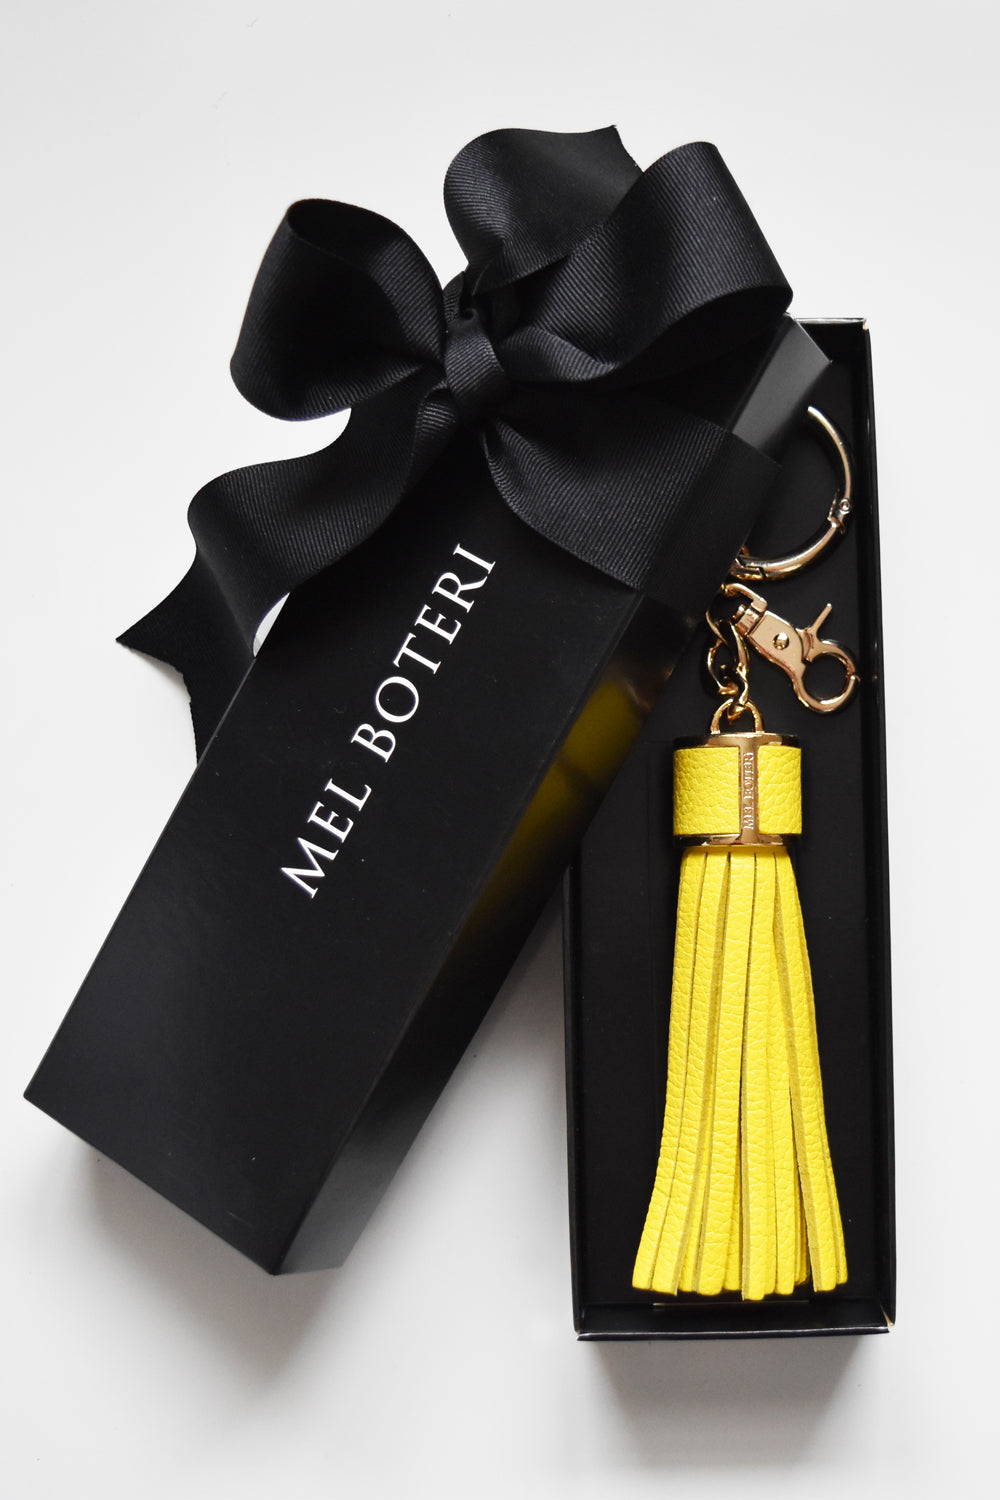 Mel Boteri | Yellow Pebble-Grain Leather Tassel Bag and Key Charm | Gold Hardware | Model